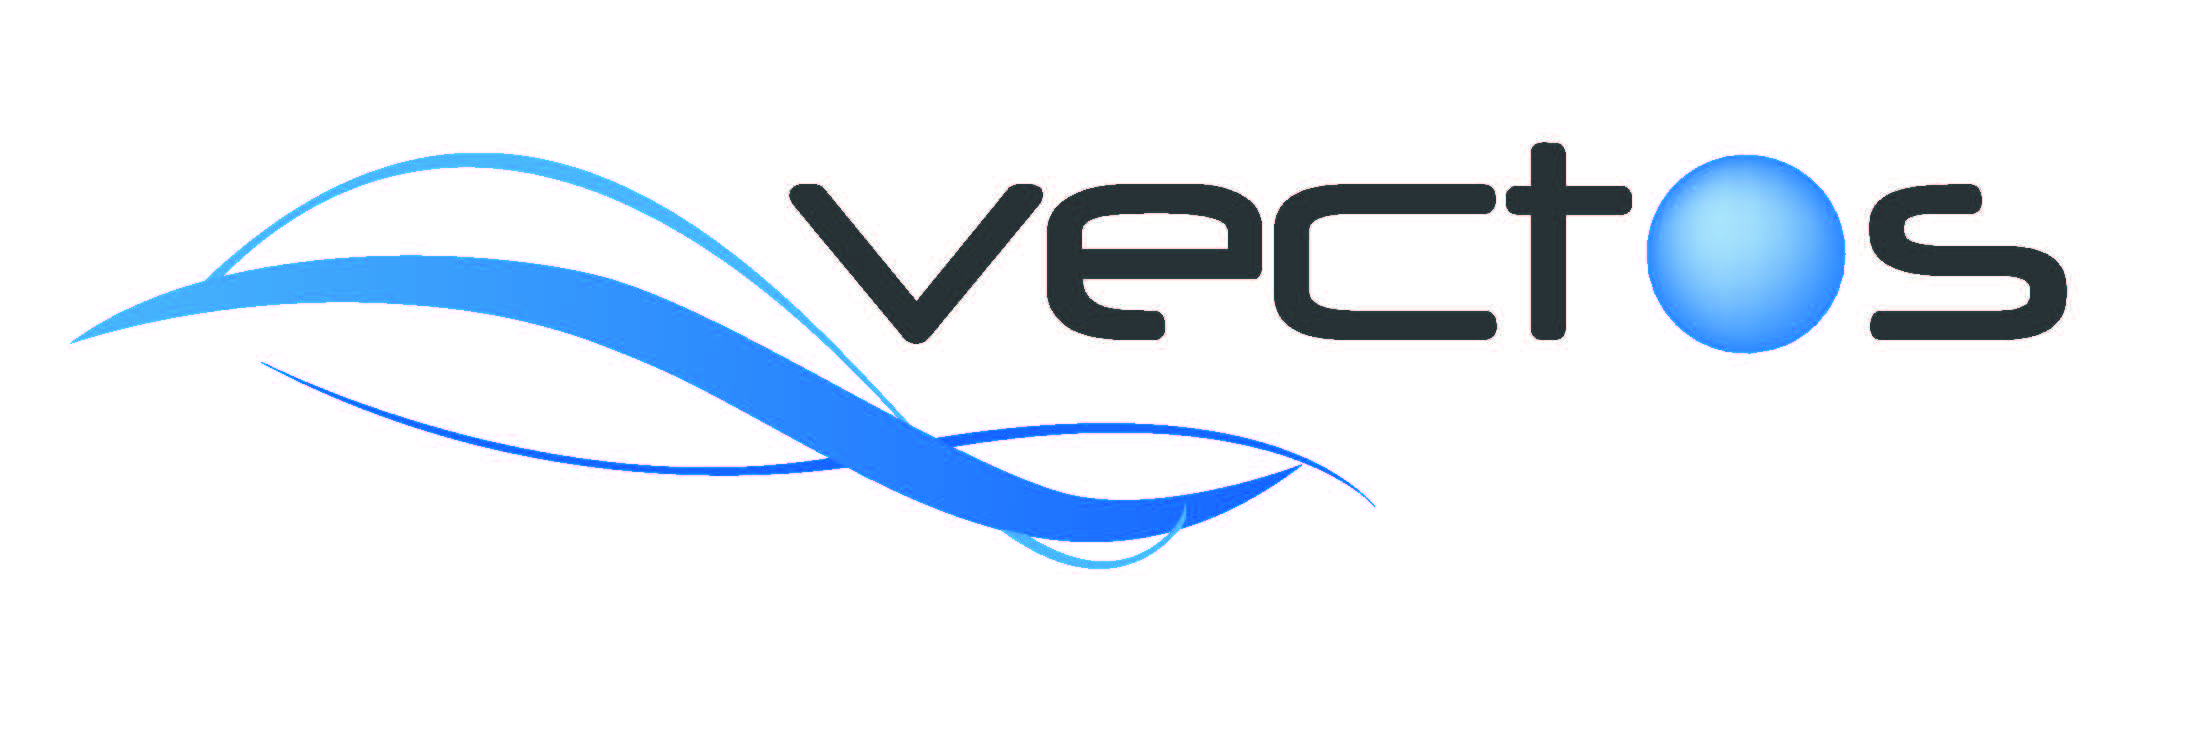 VECTOS LOGO_new.jpg